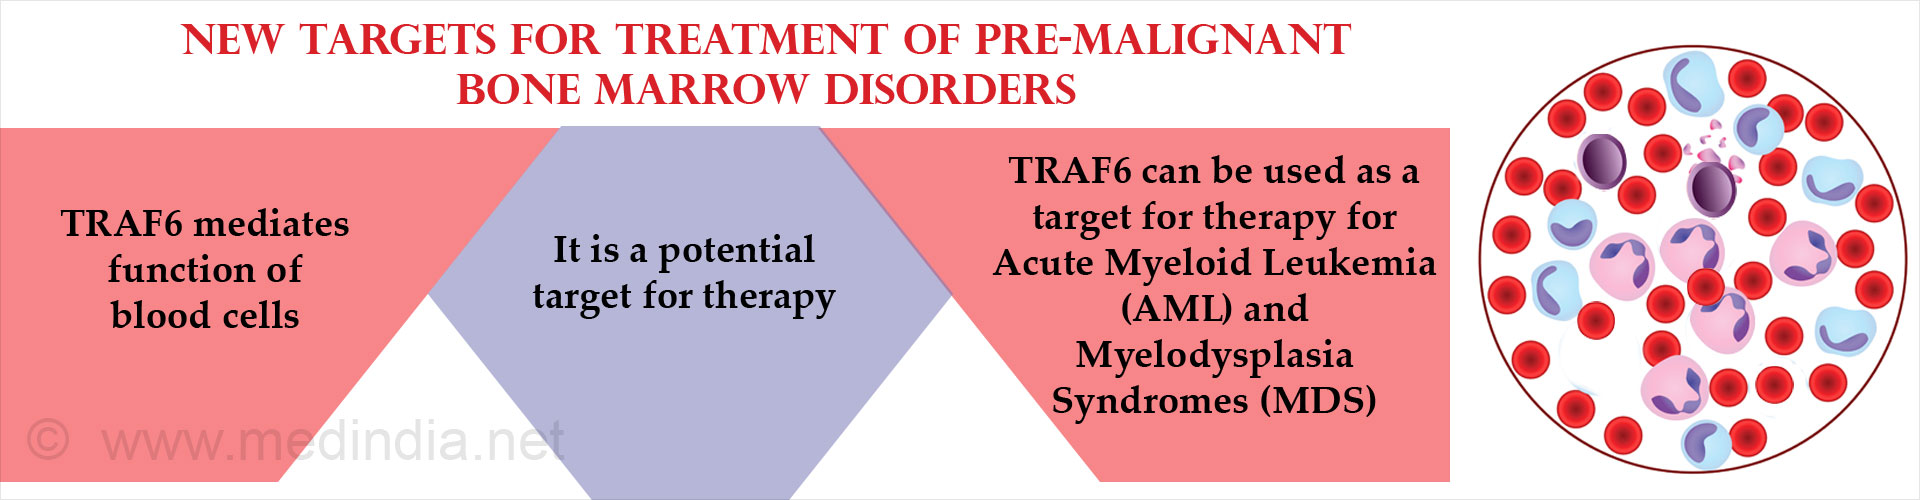 New Potential Treatment Targets Found for Pre-Malignant Bone Marrow Disorders